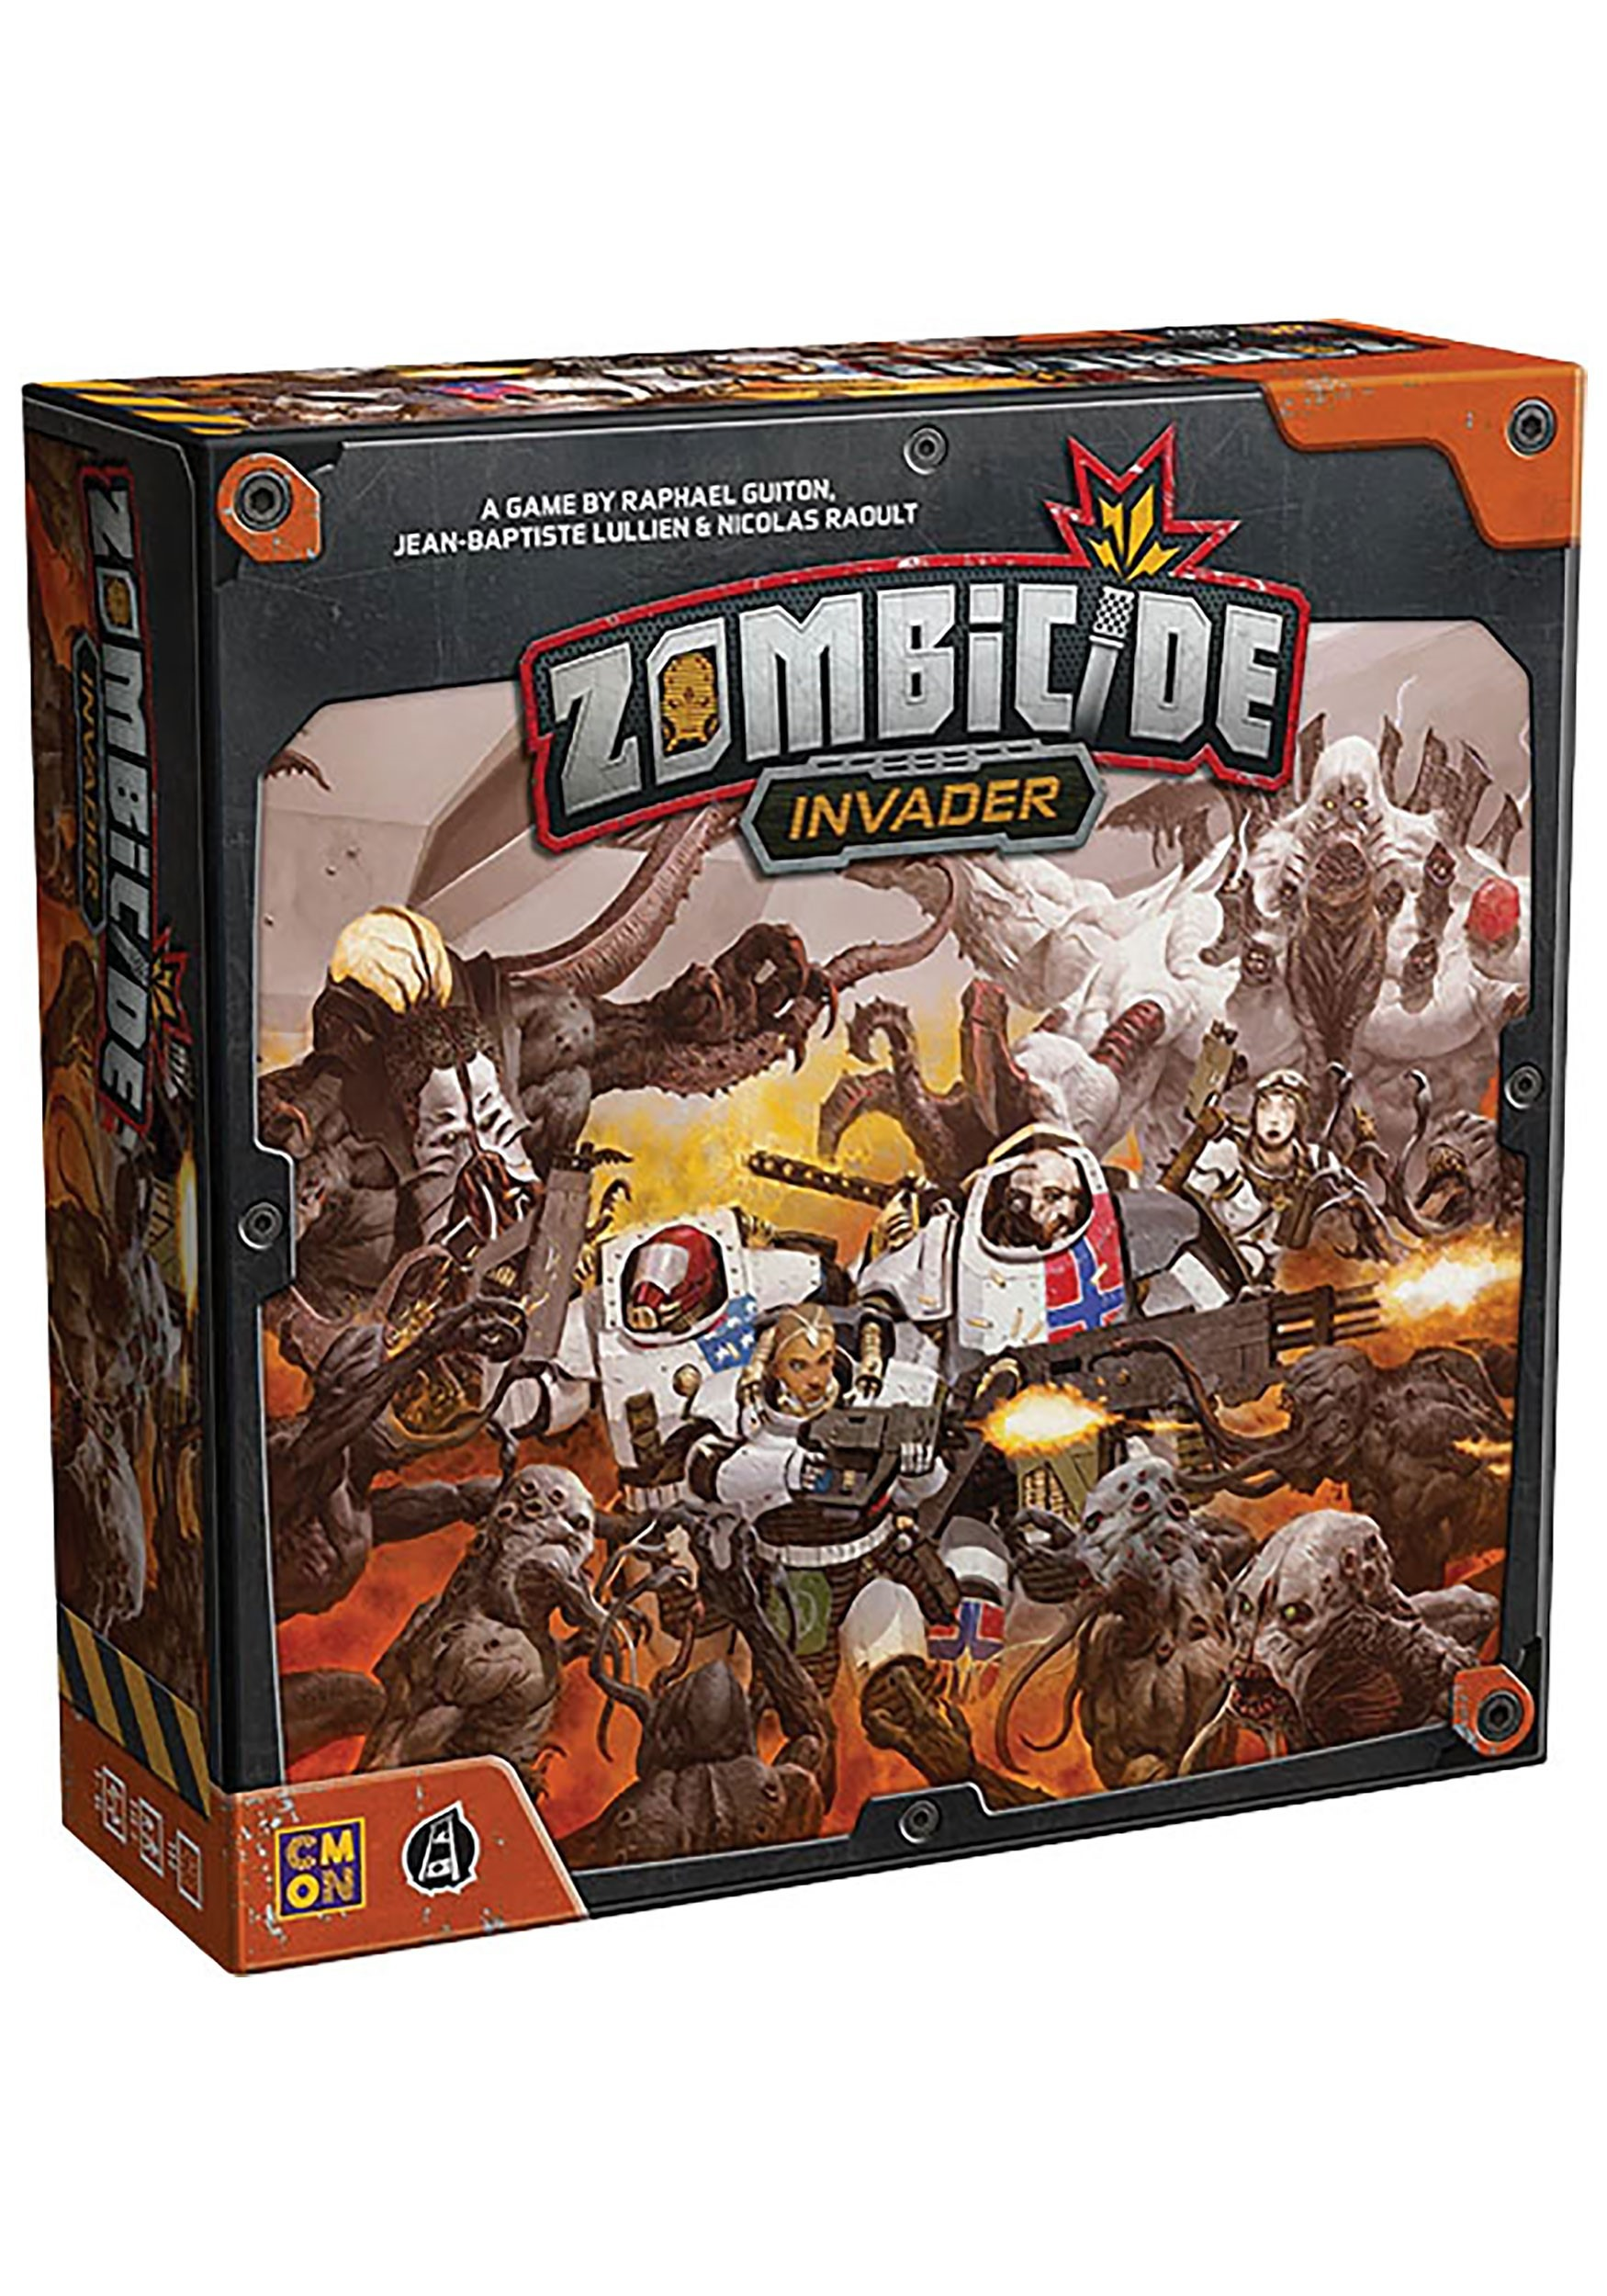 The Zombicide: Invader Board Game